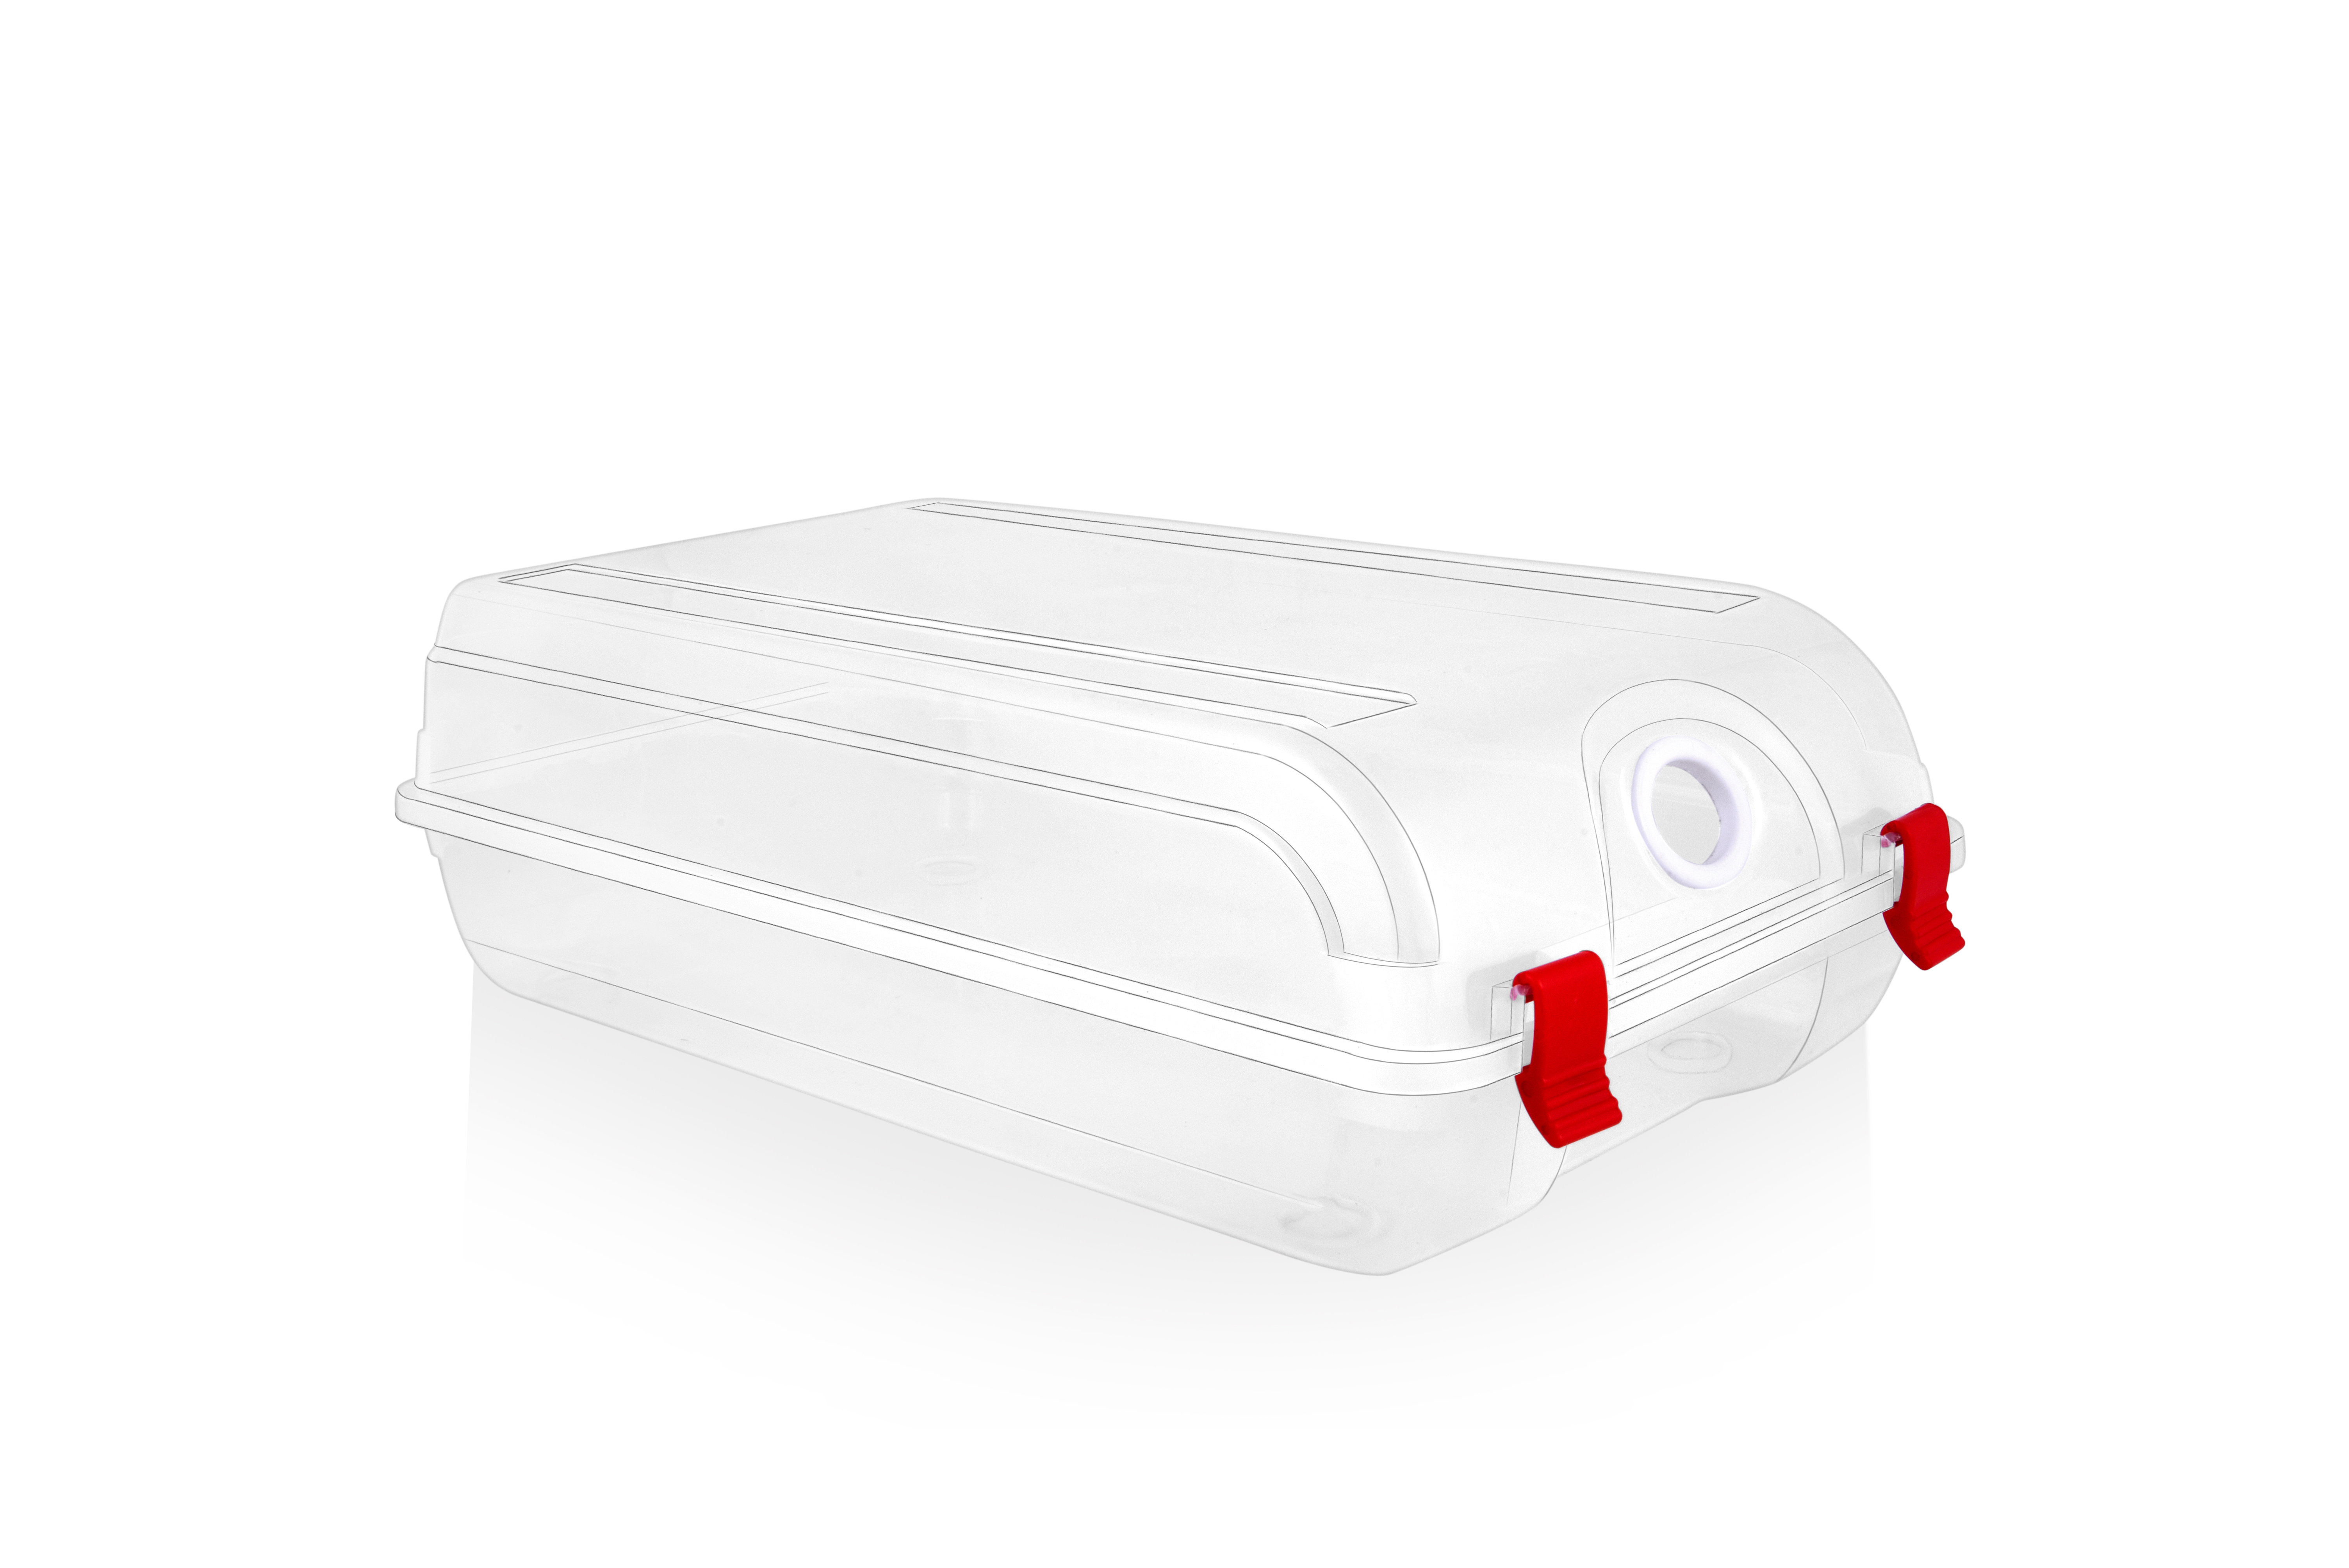 Footwear Packing Container